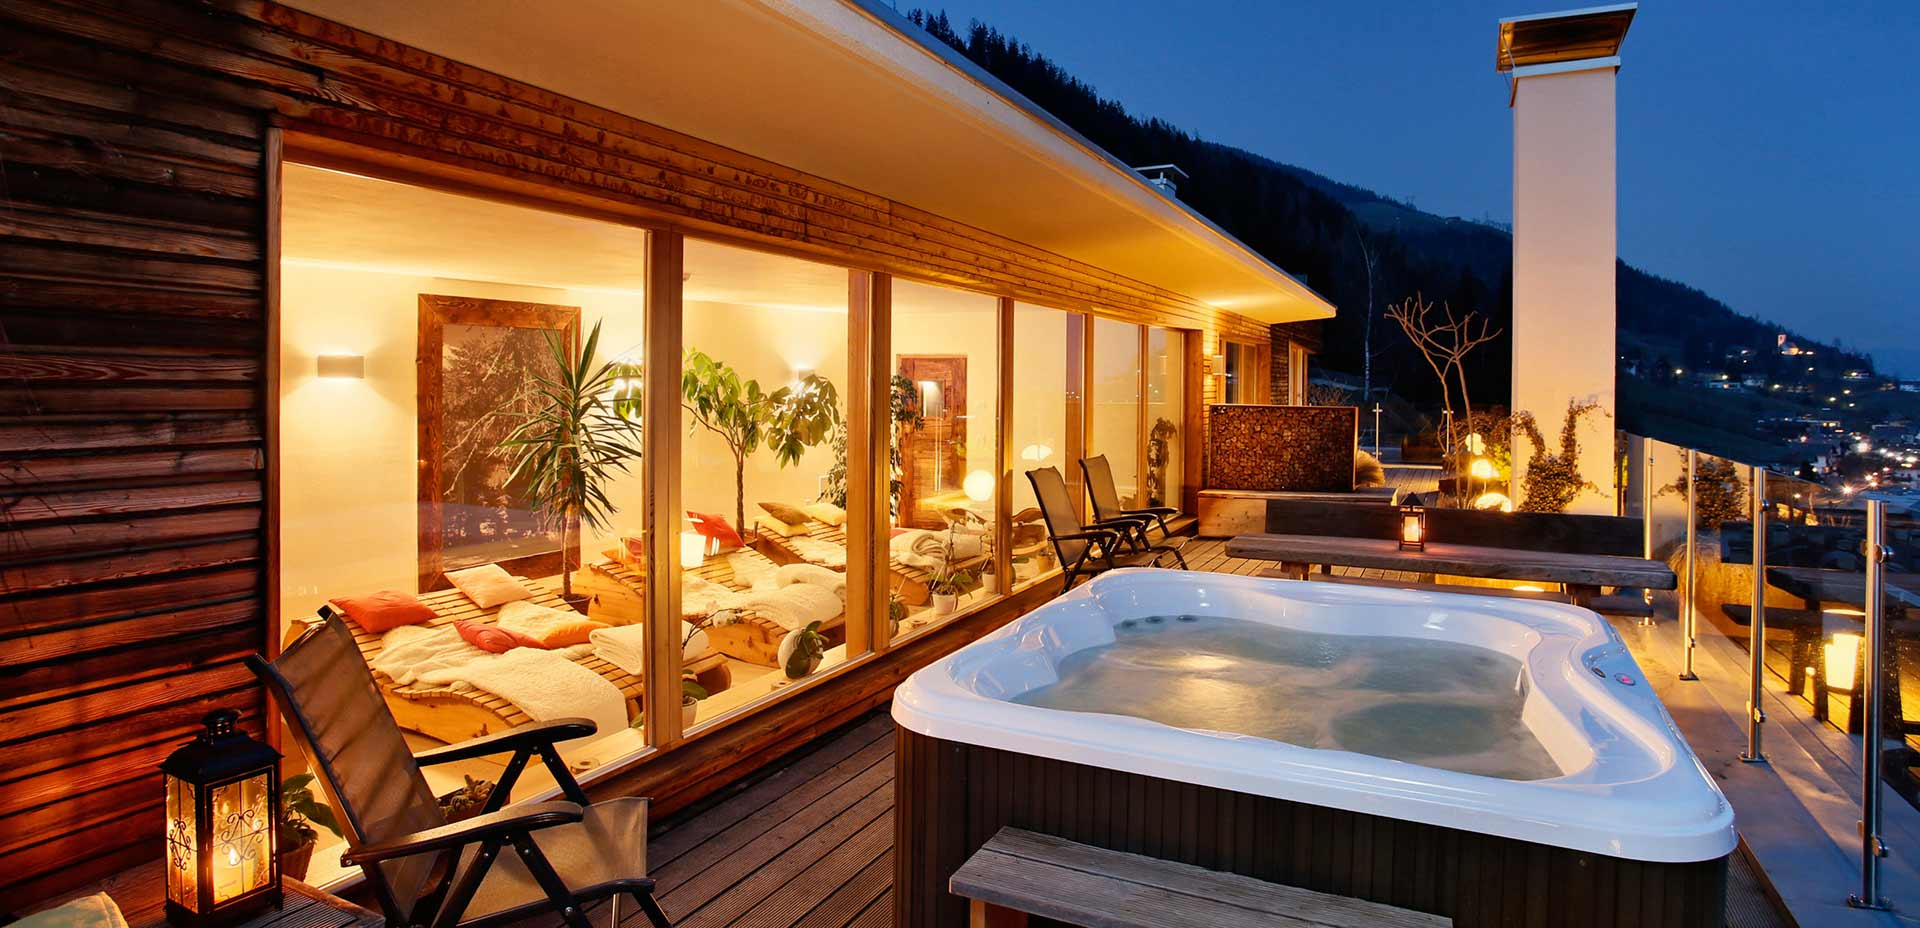 Scenic rooftop terrace with Jacuzzi